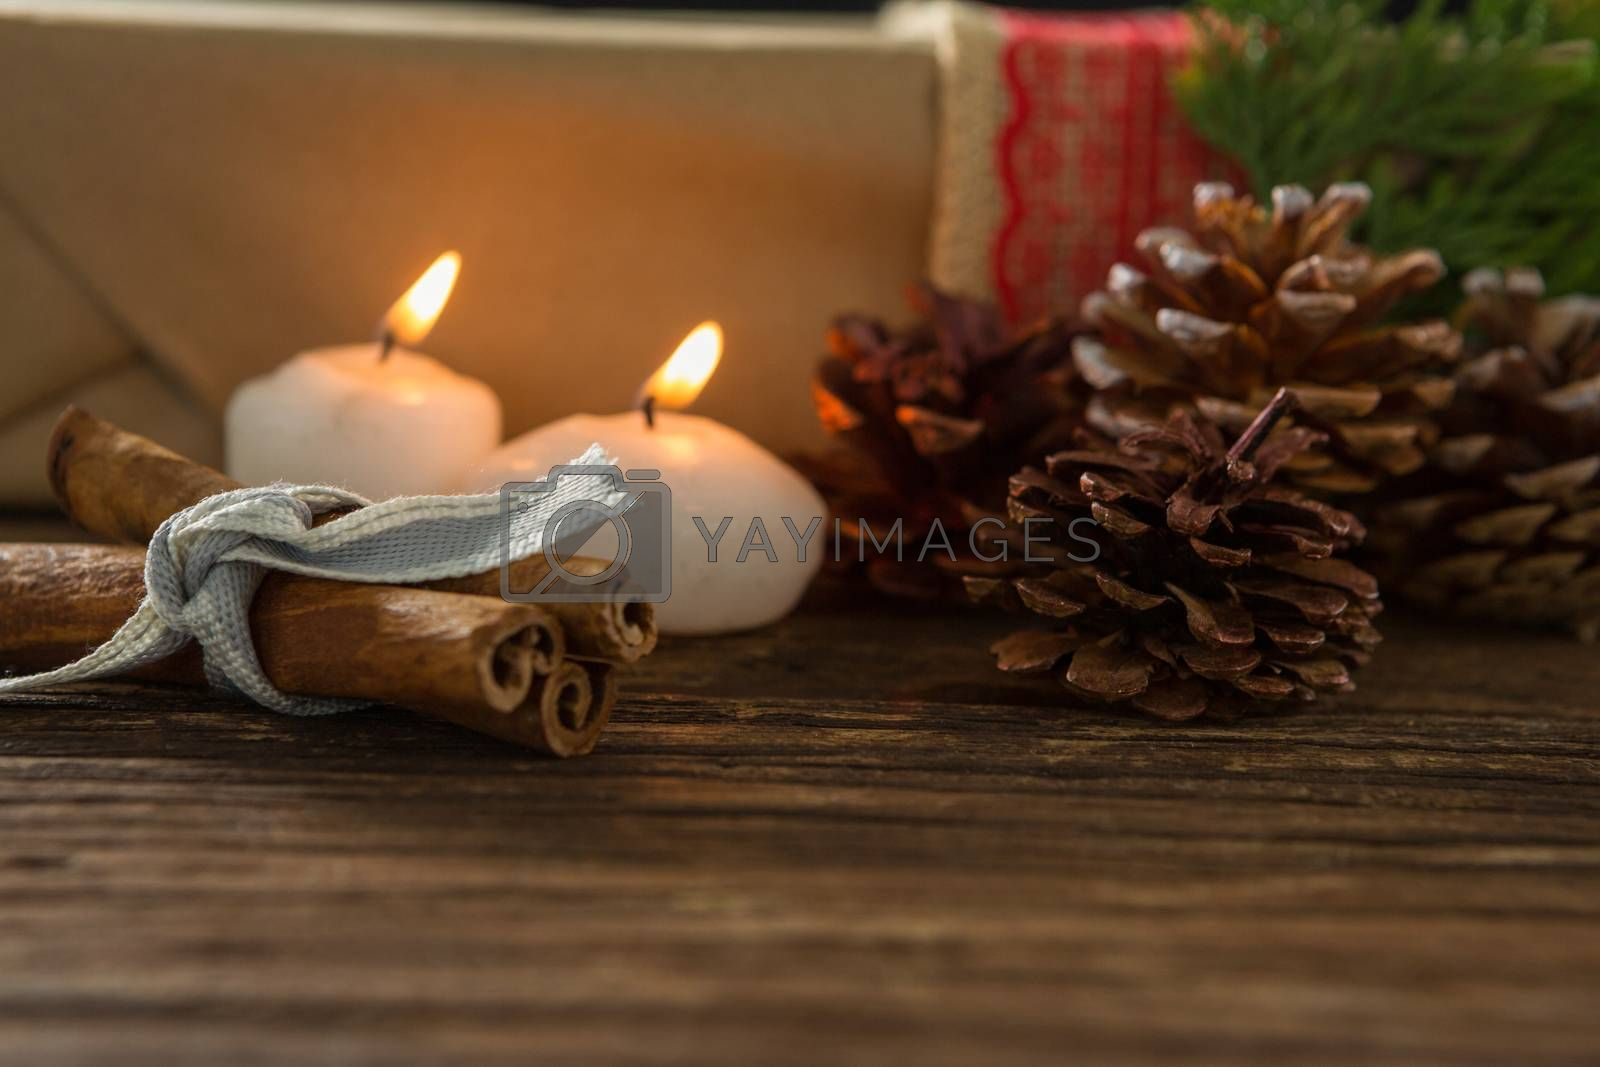 Illuminated candle with pine cones and cinnamon sticks by Wavebreakmedia